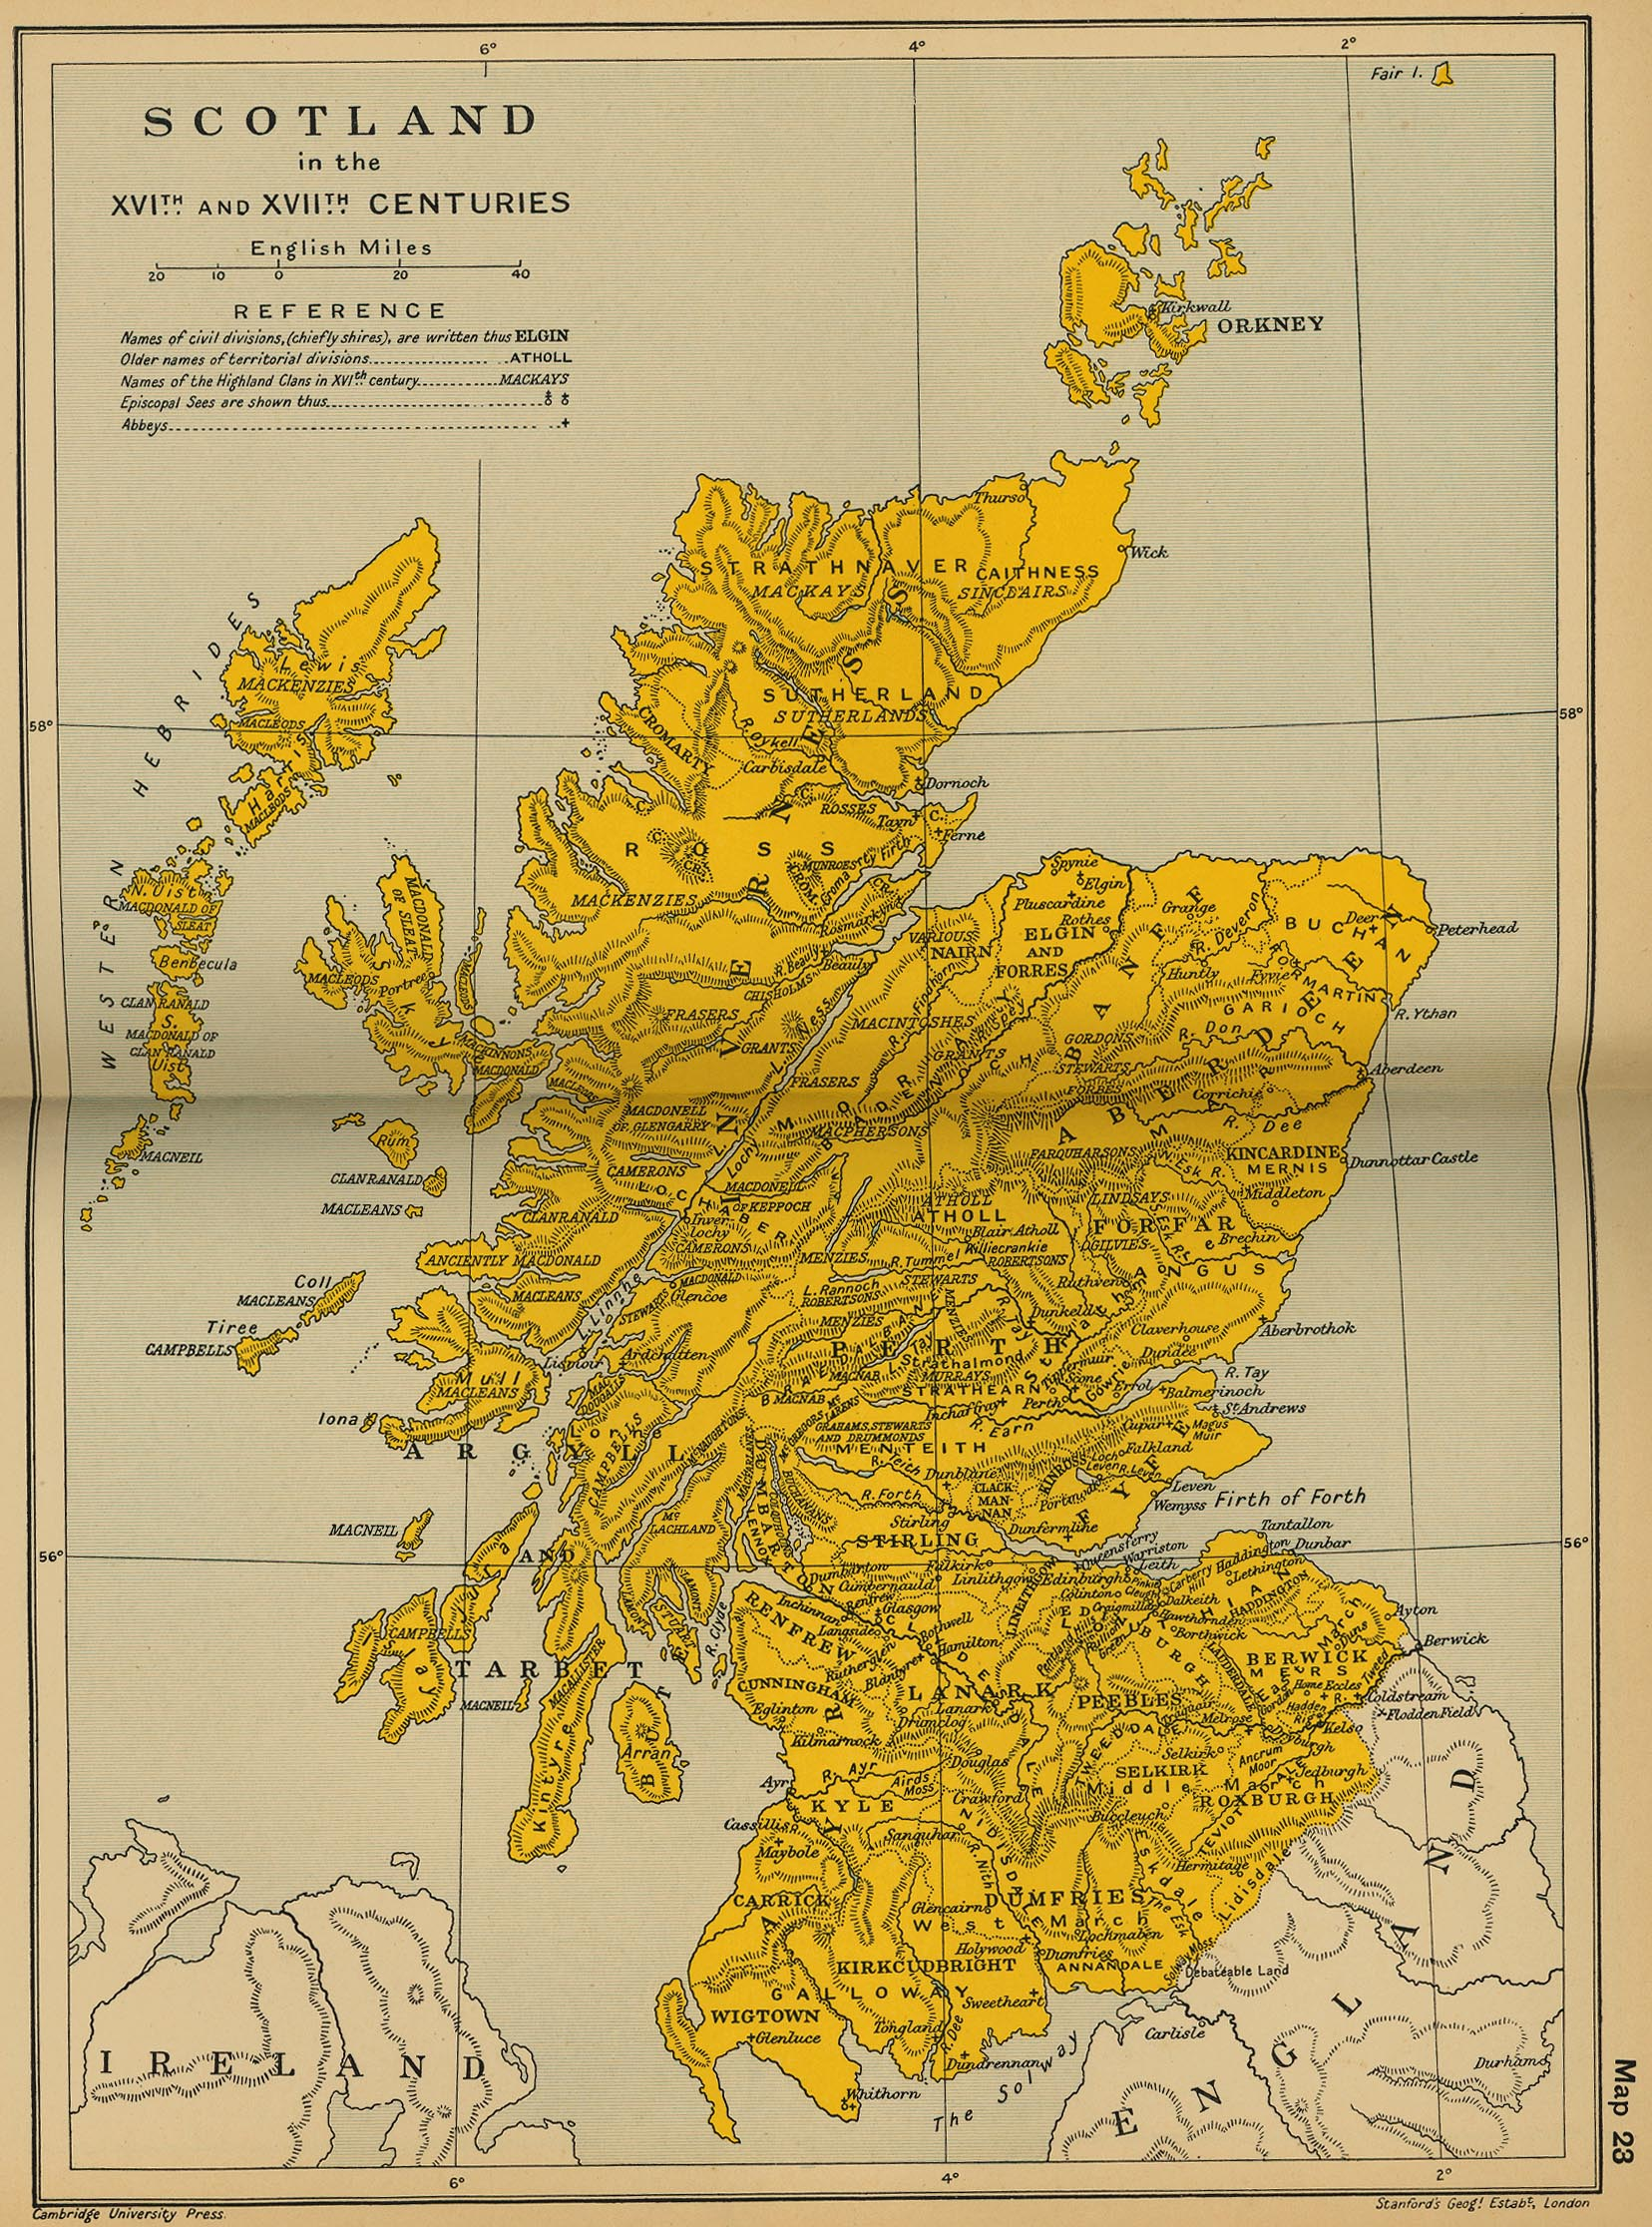 Cambridge modern history atlas 1912 perry castaeda map collection map 22 scotland in the xvith and xviith centuries gumiabroncs Image collections